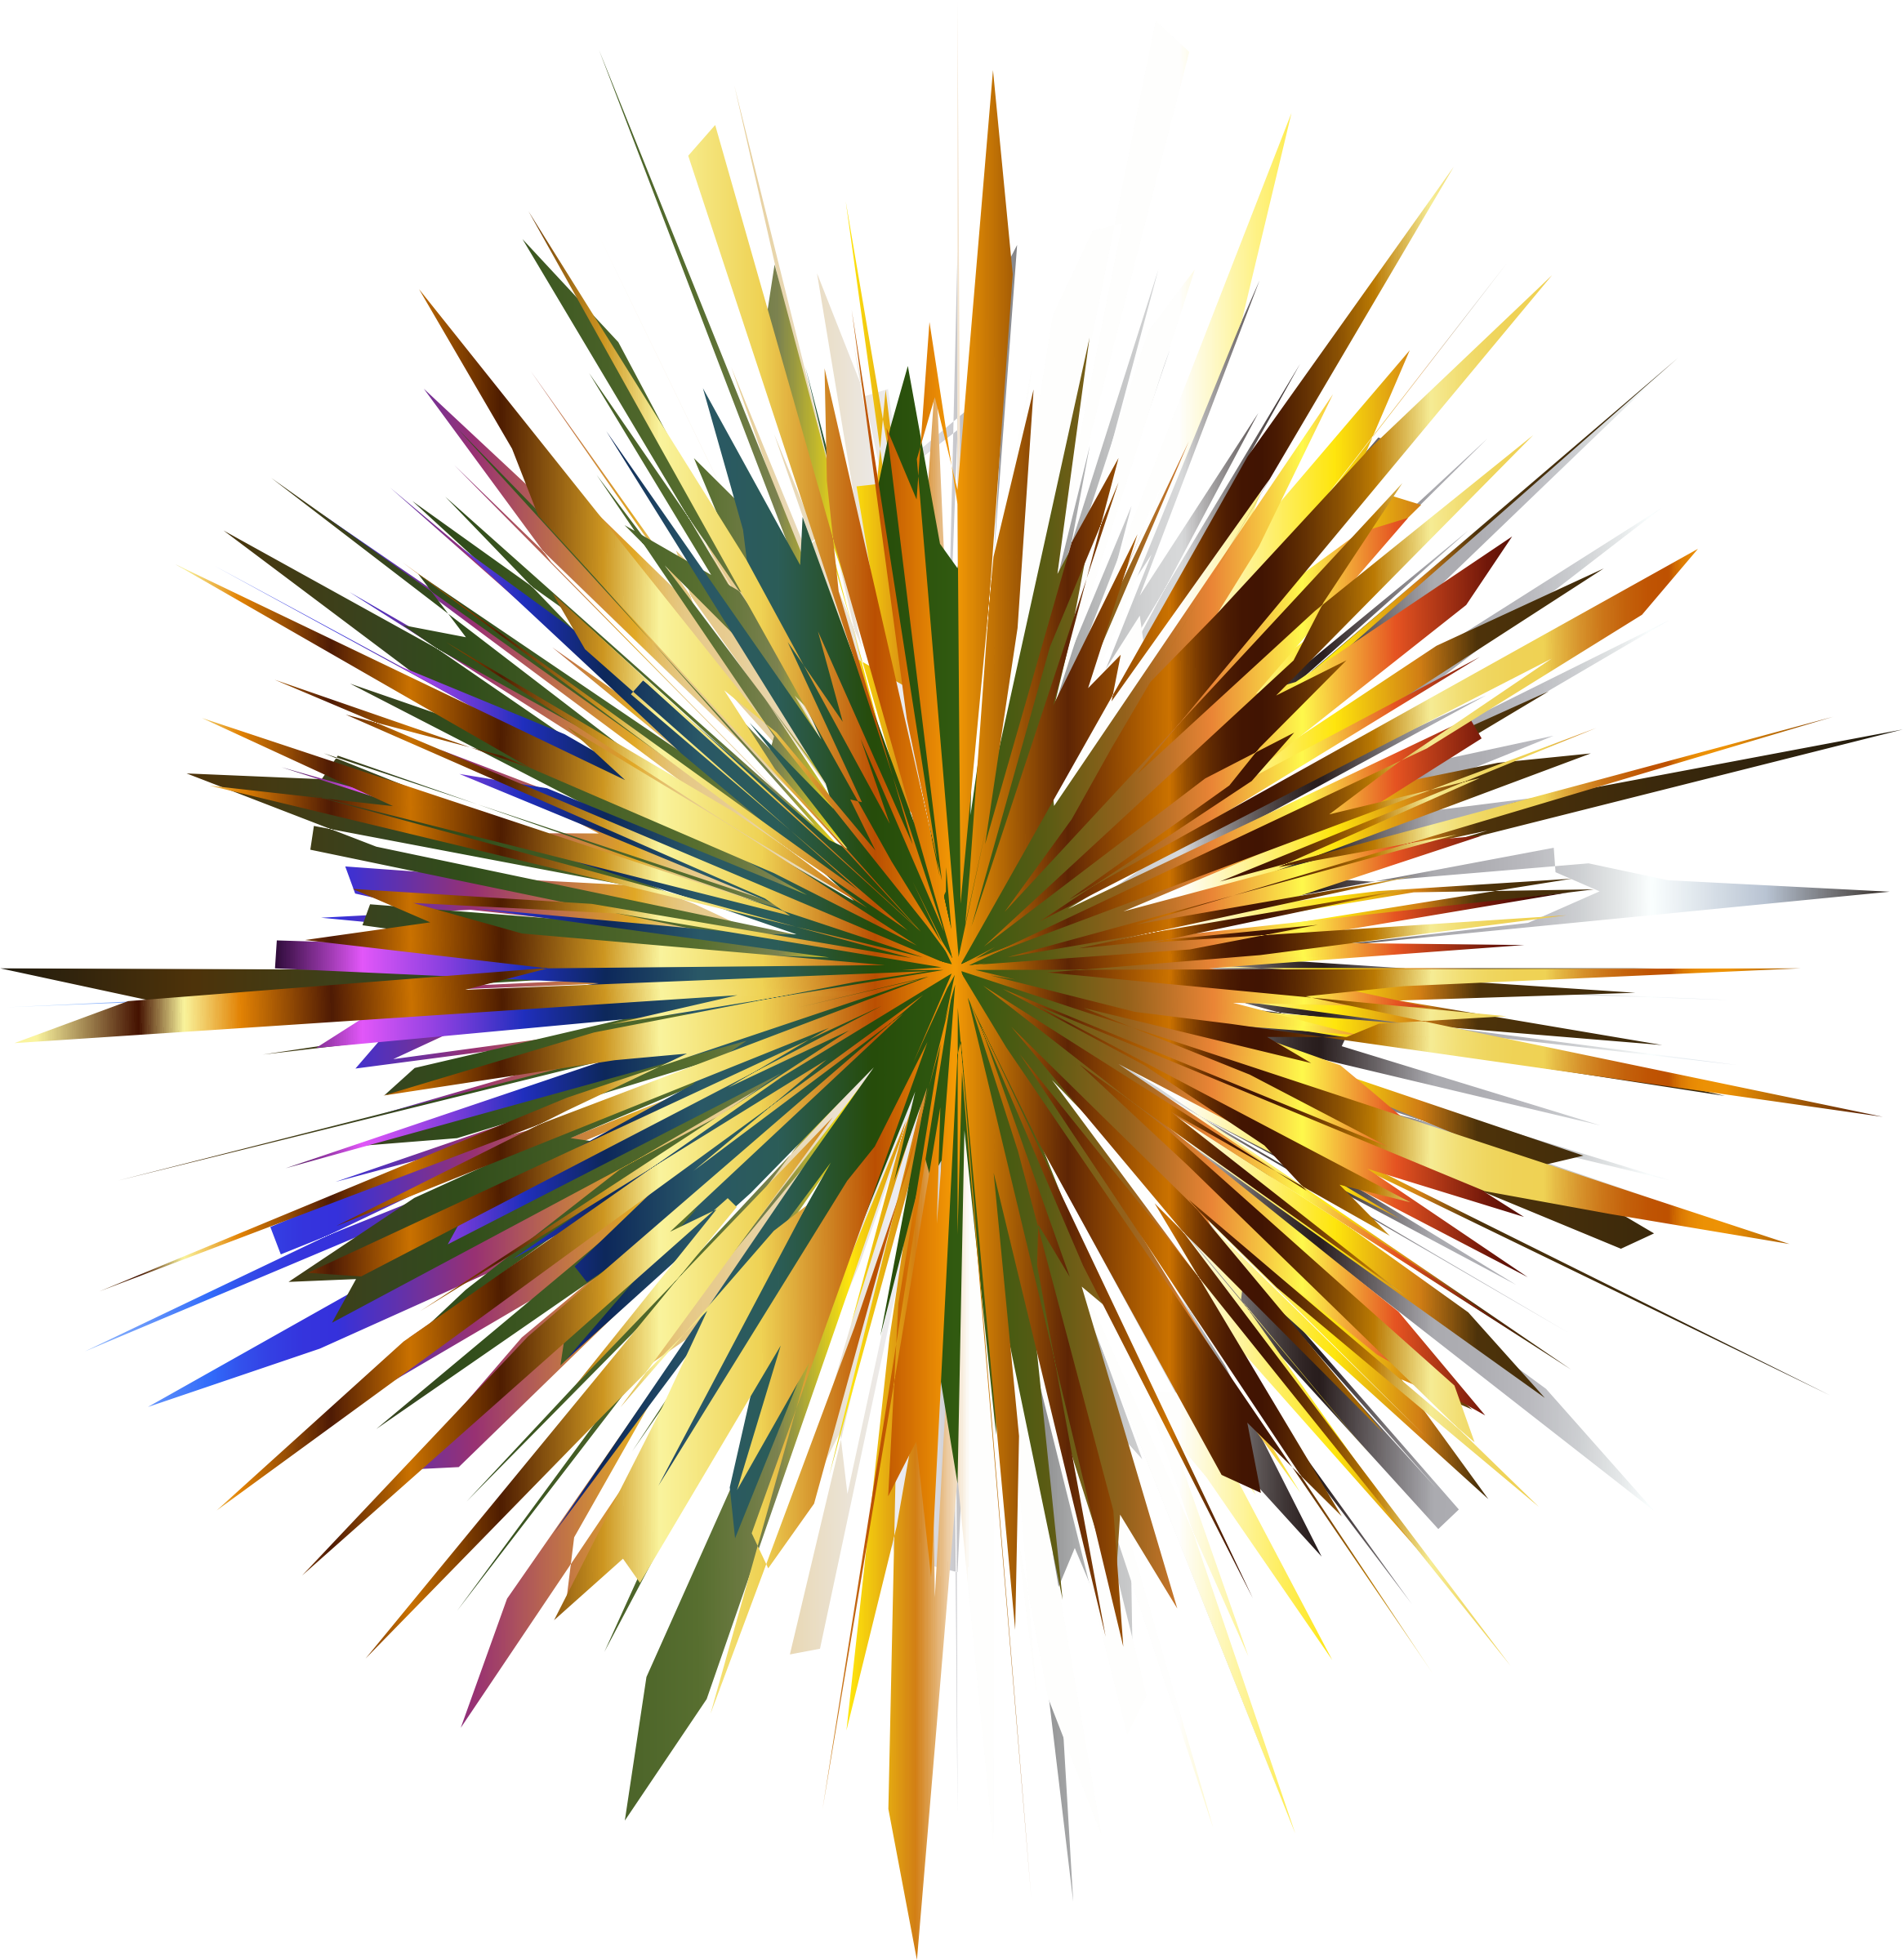 Cosmic clipart small explosion Clipart Explosion Explosion